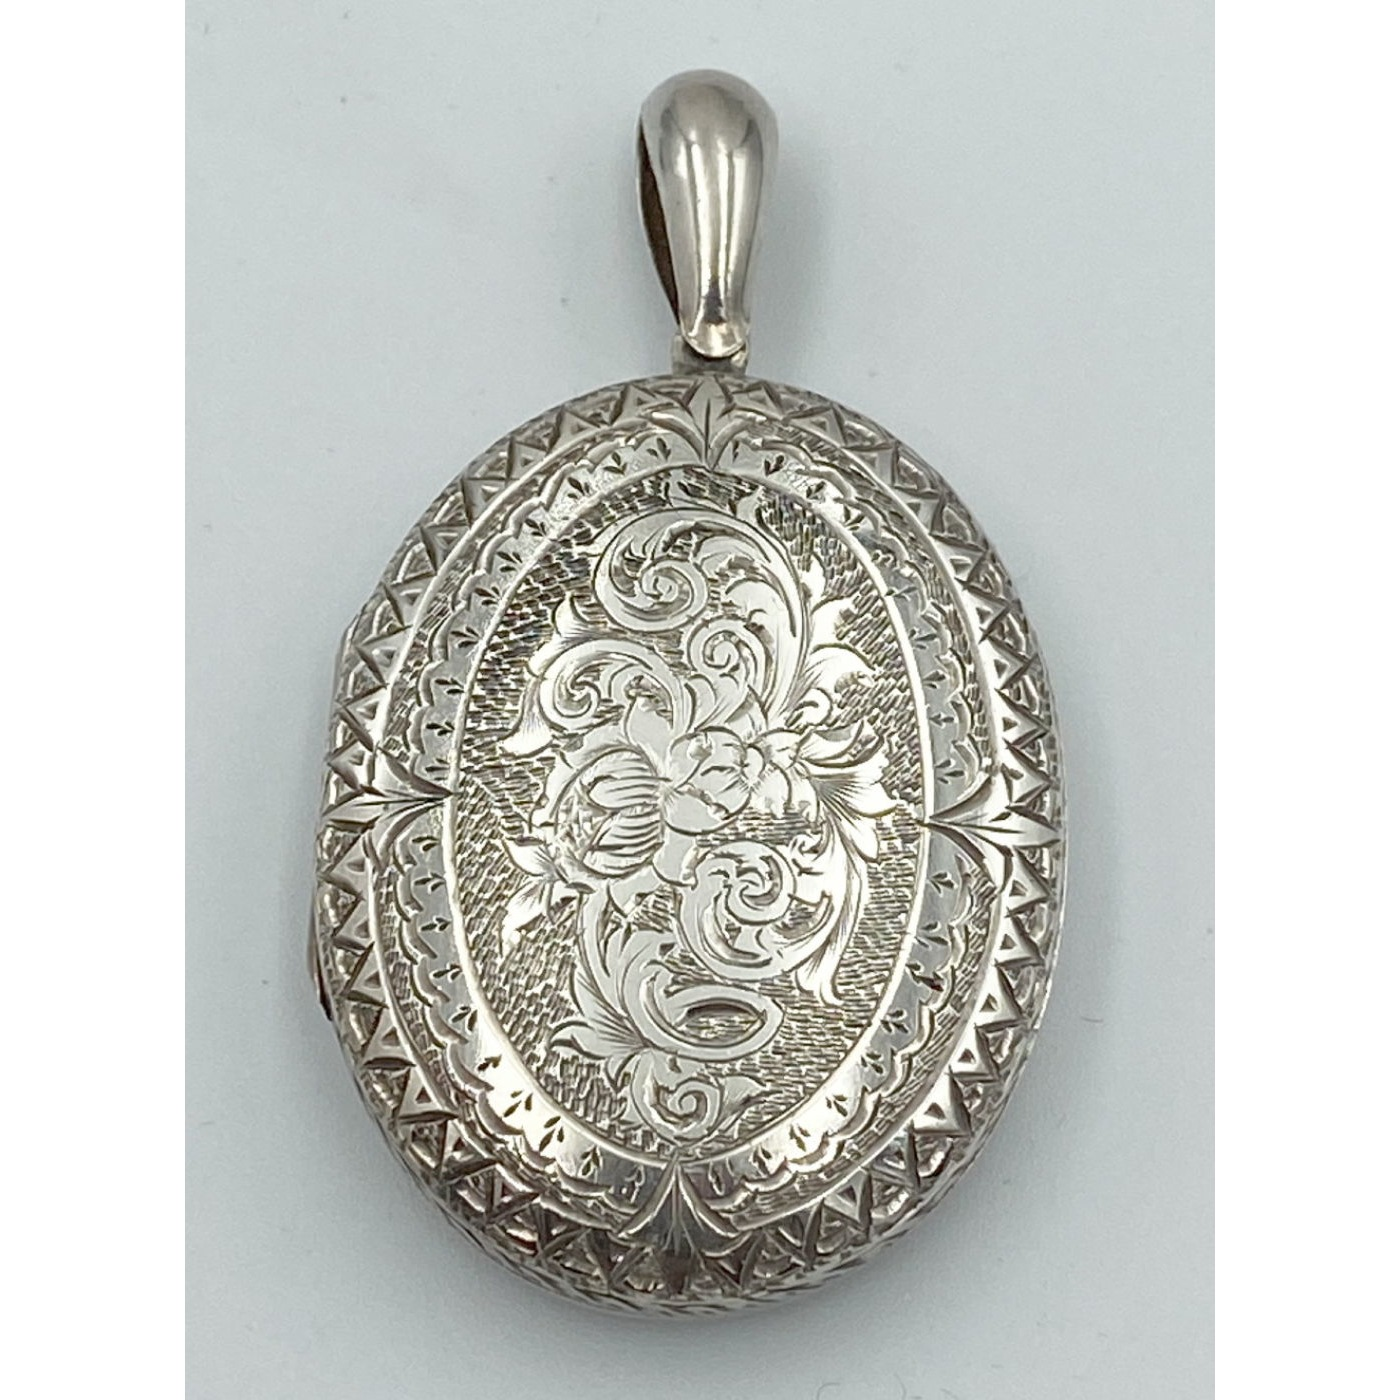 Ornately Adorned Floral Two-Sided Medium Size Antique English Silver Locket